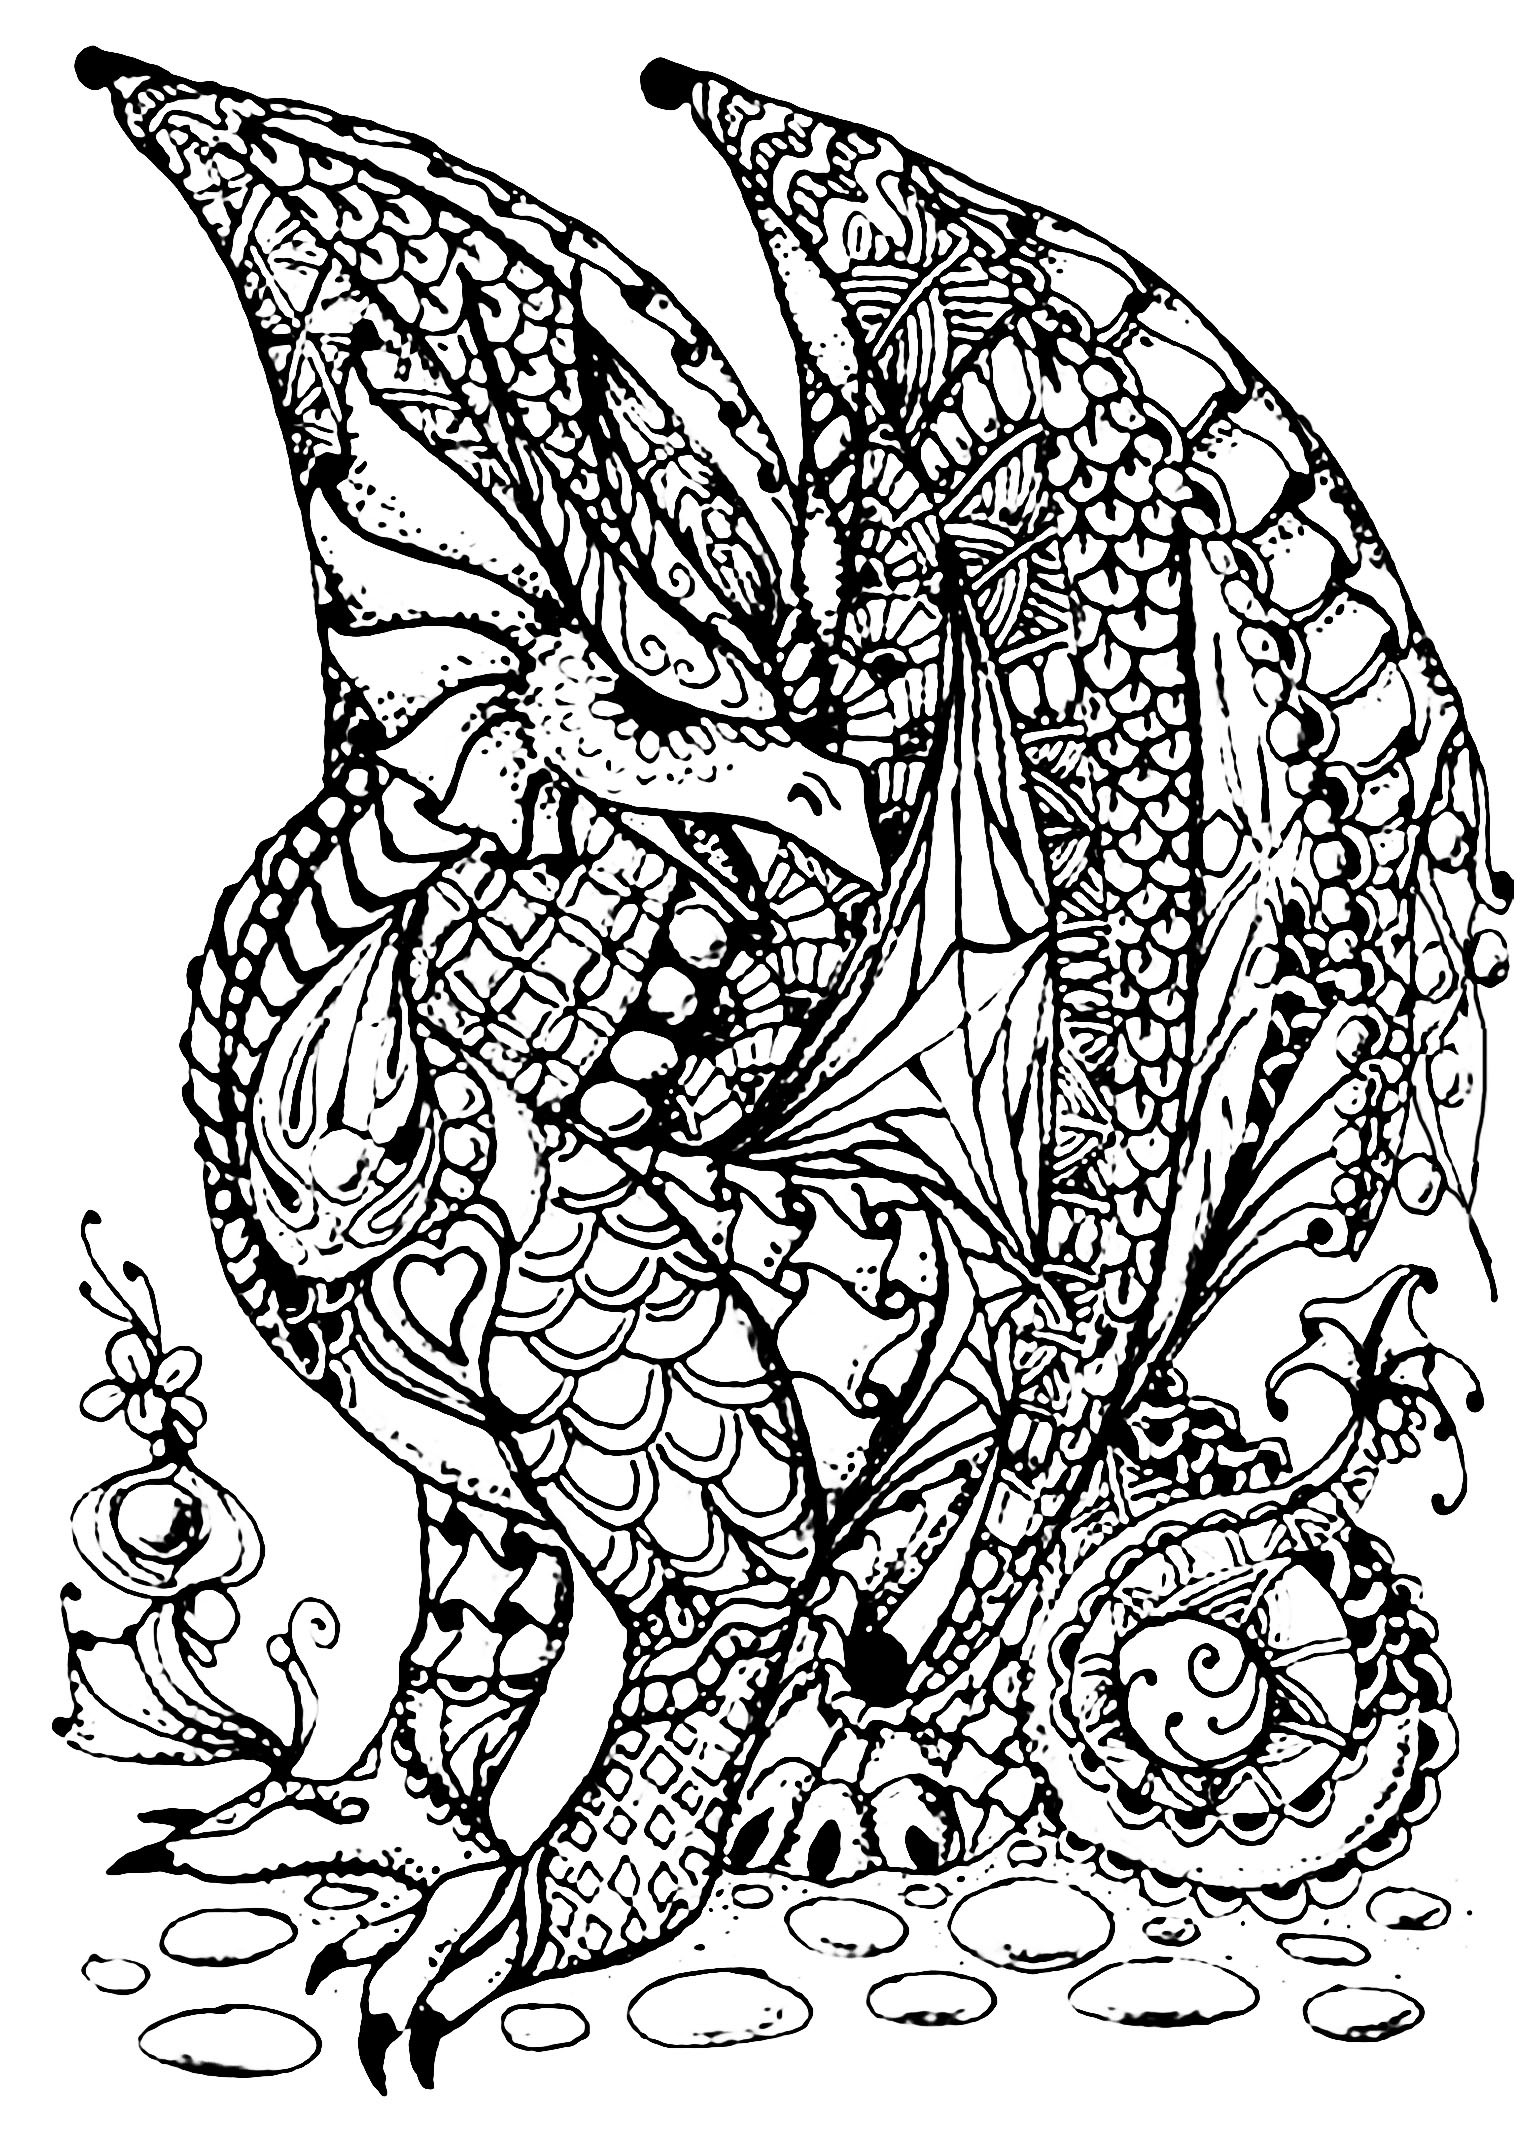 Best ideas about Dragons Coloring Pages For Adults . Save or Pin Dragon full of scales Dragons Adult Coloring Pages Now.